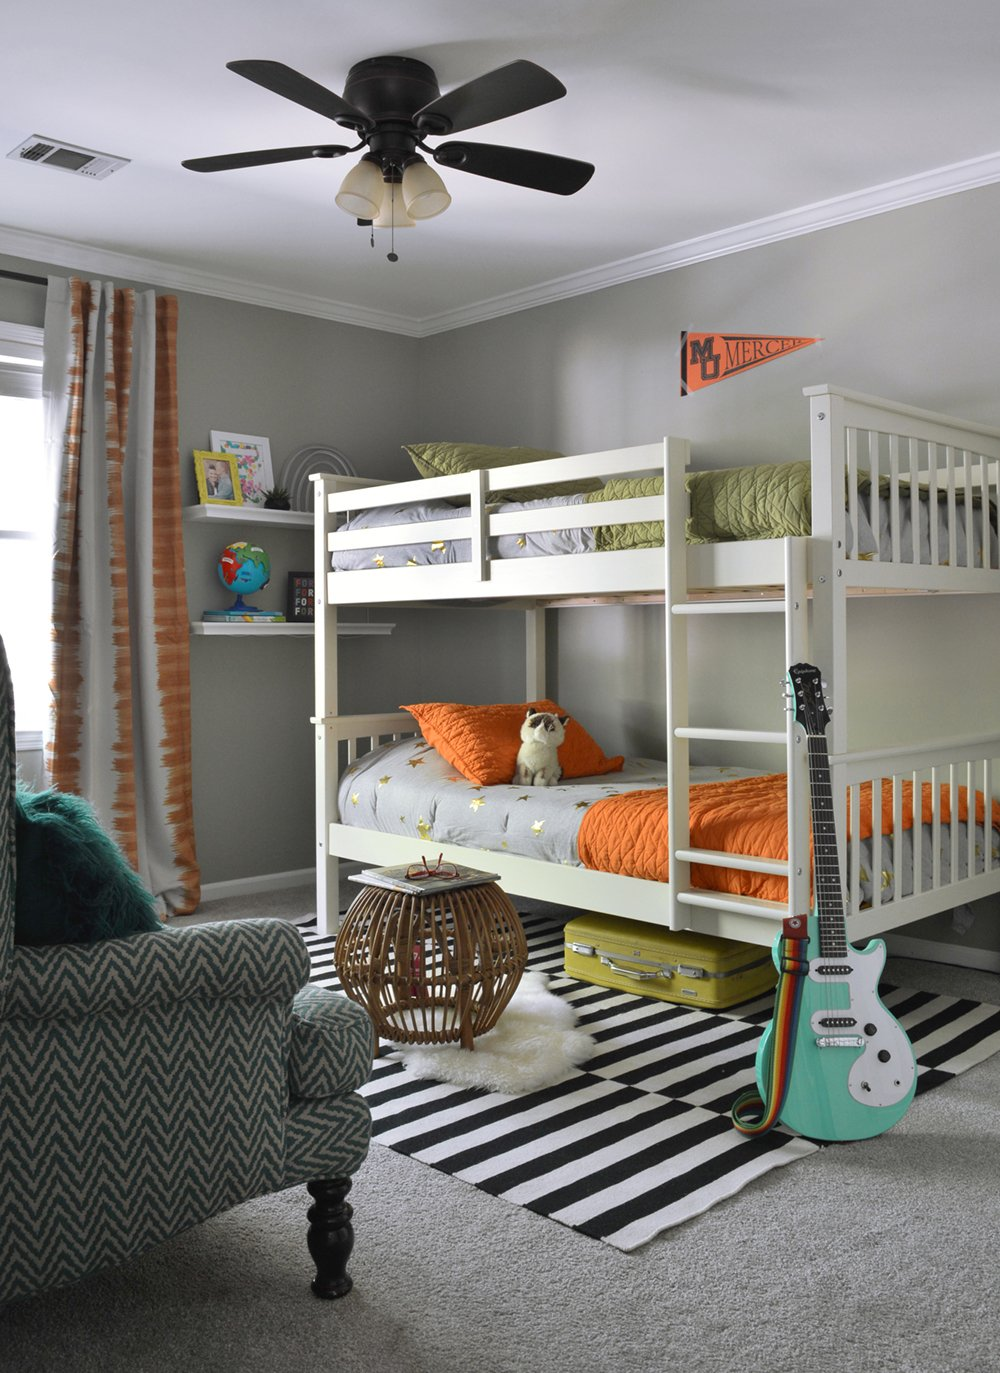 Love this colorful boy's bedroom with bunk beds and pops of orange, green, and teal.